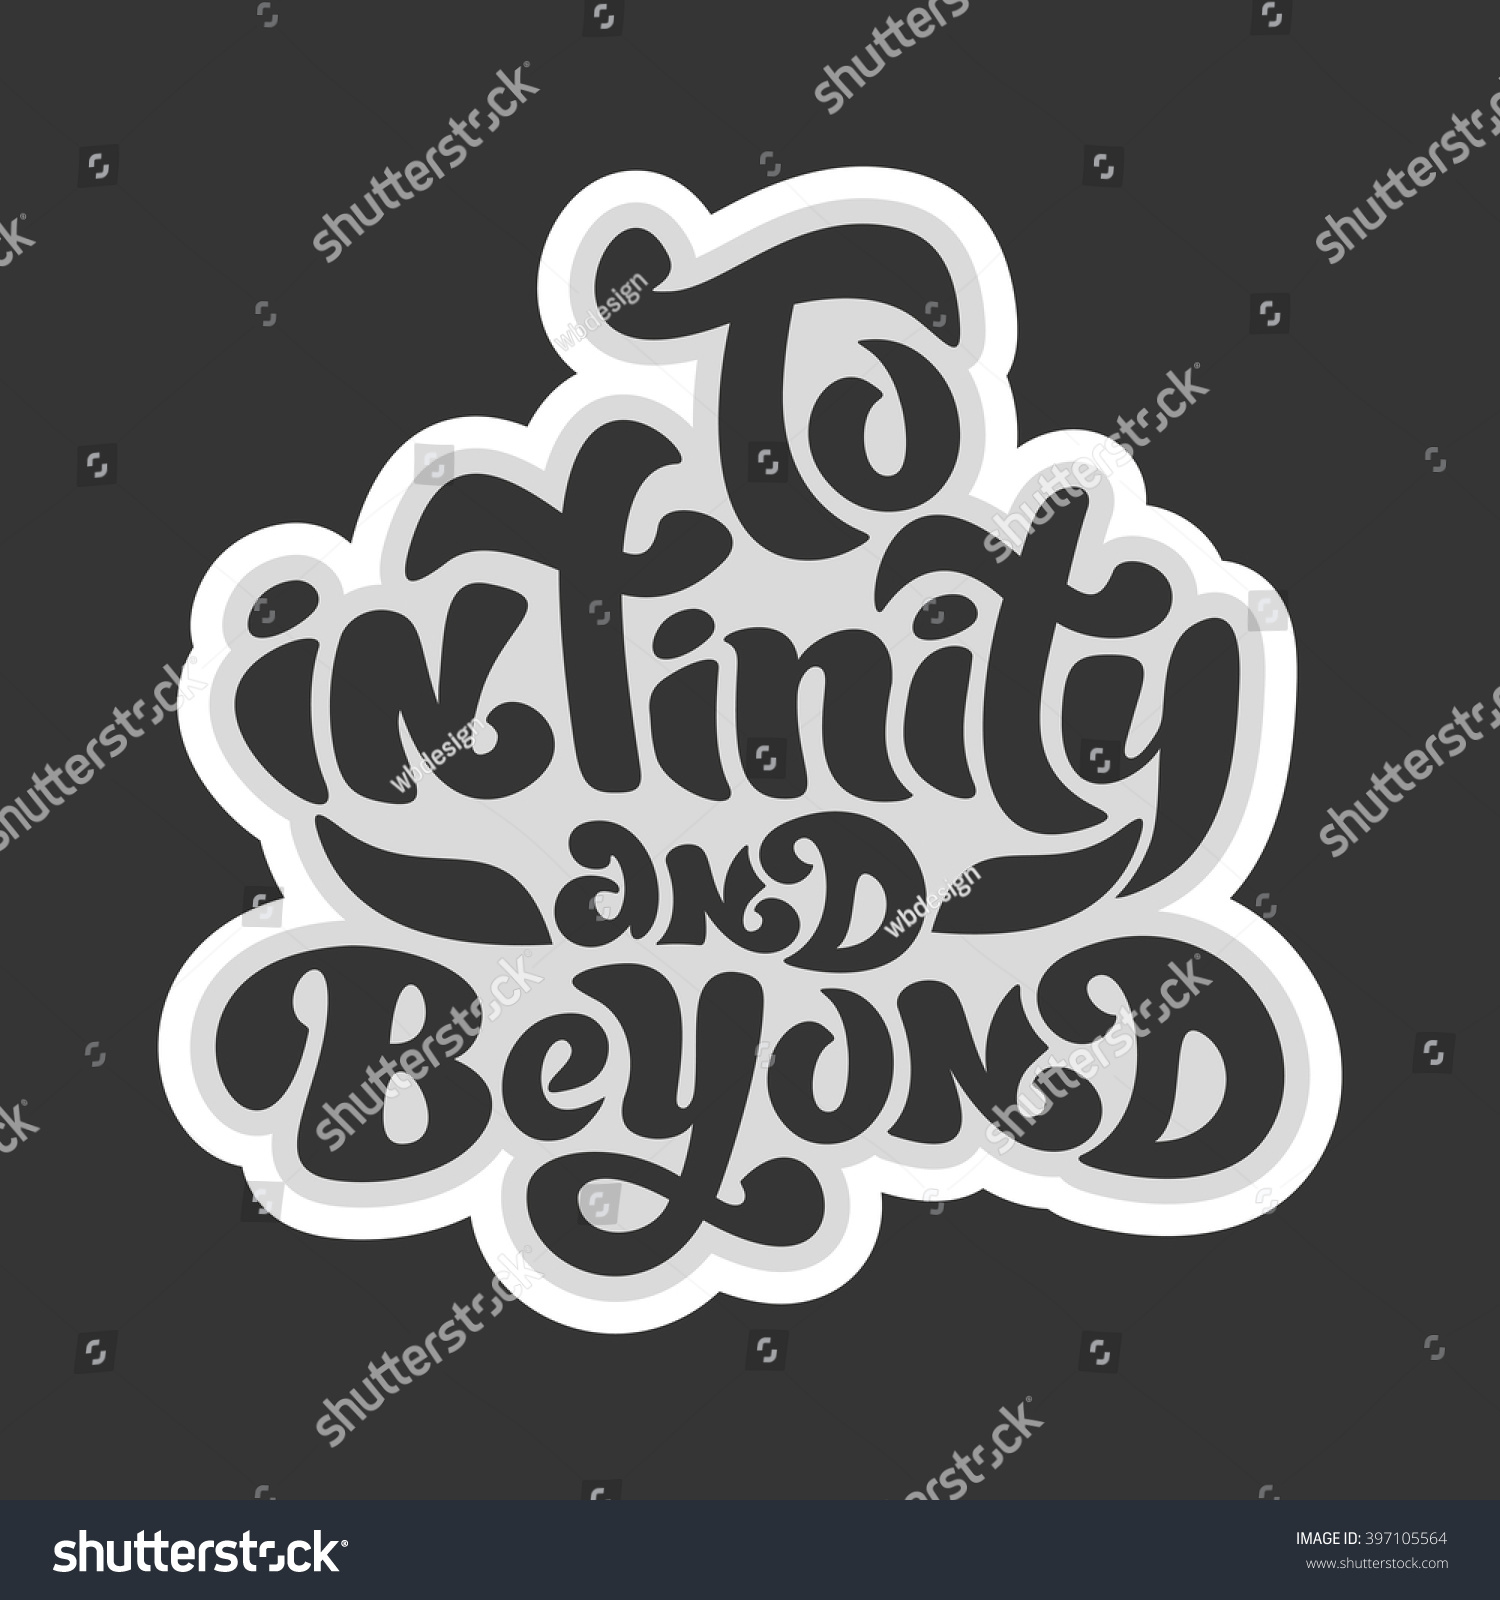 Shirt design unique - To Infinity And Beyond Unique Typography Poster Or Apparel Design Motivational T Shirt